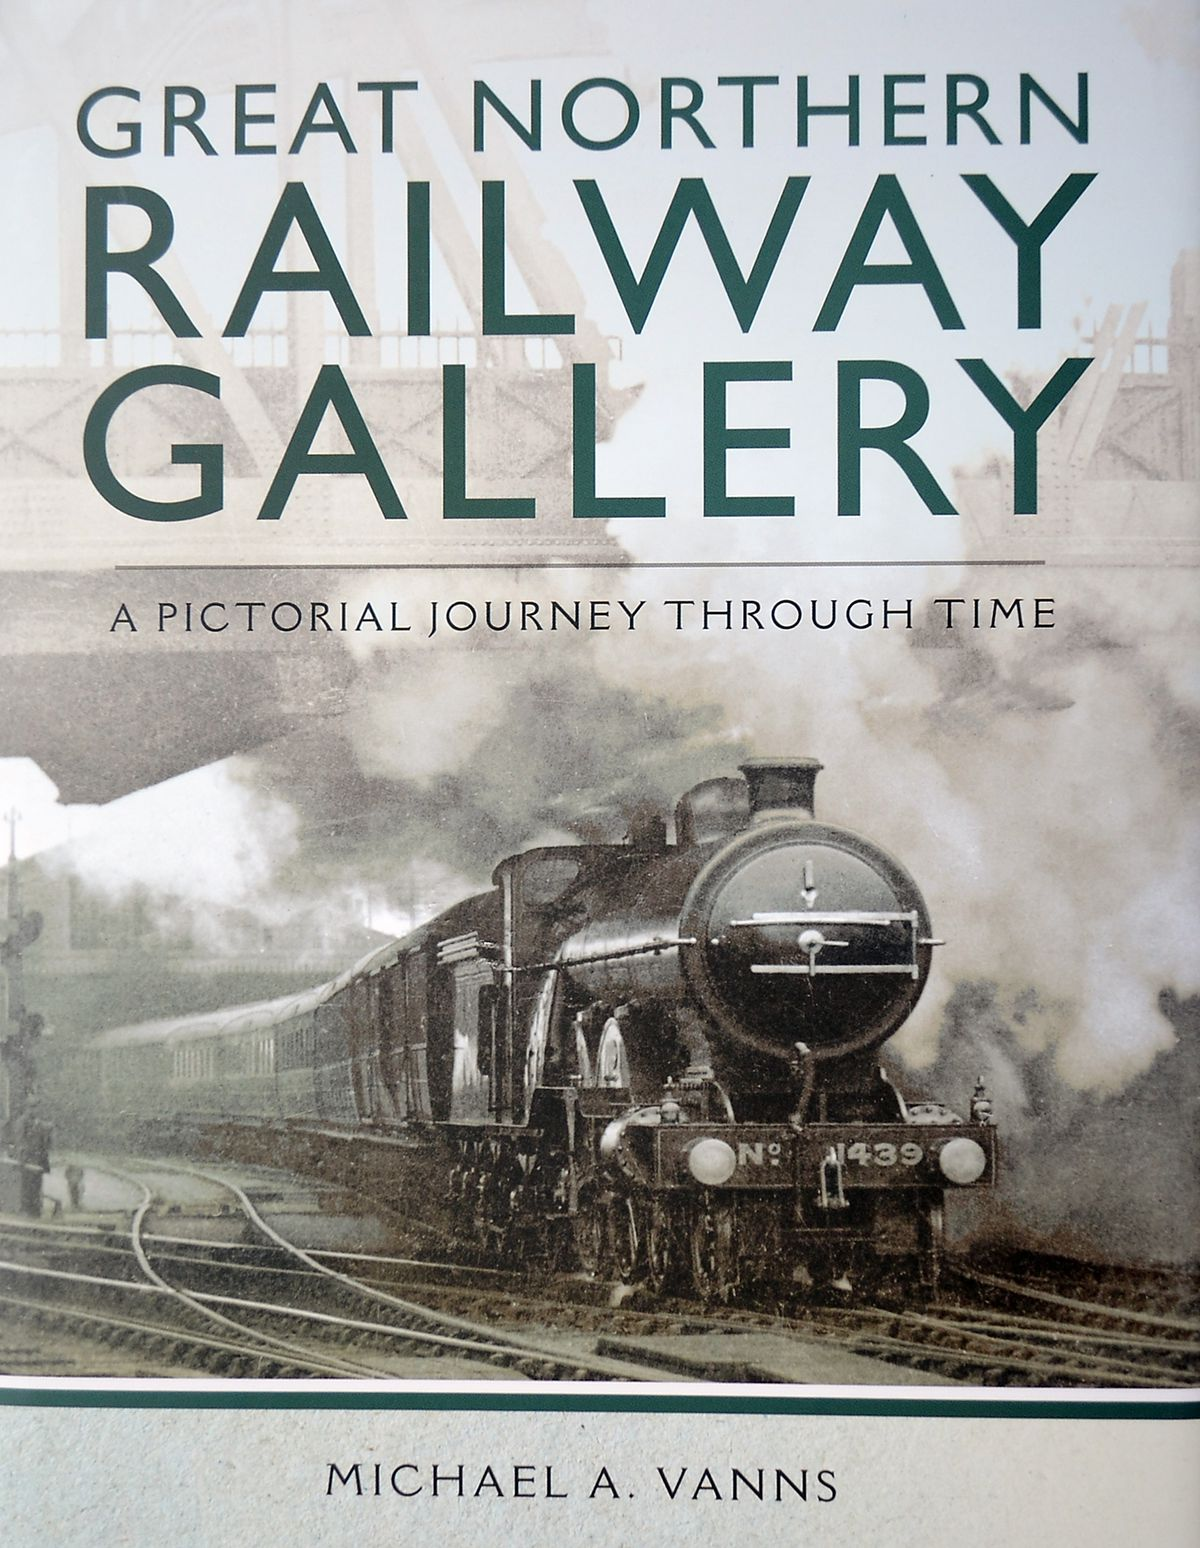 Great Northern Railway Gallery by Michael A. Vanns.